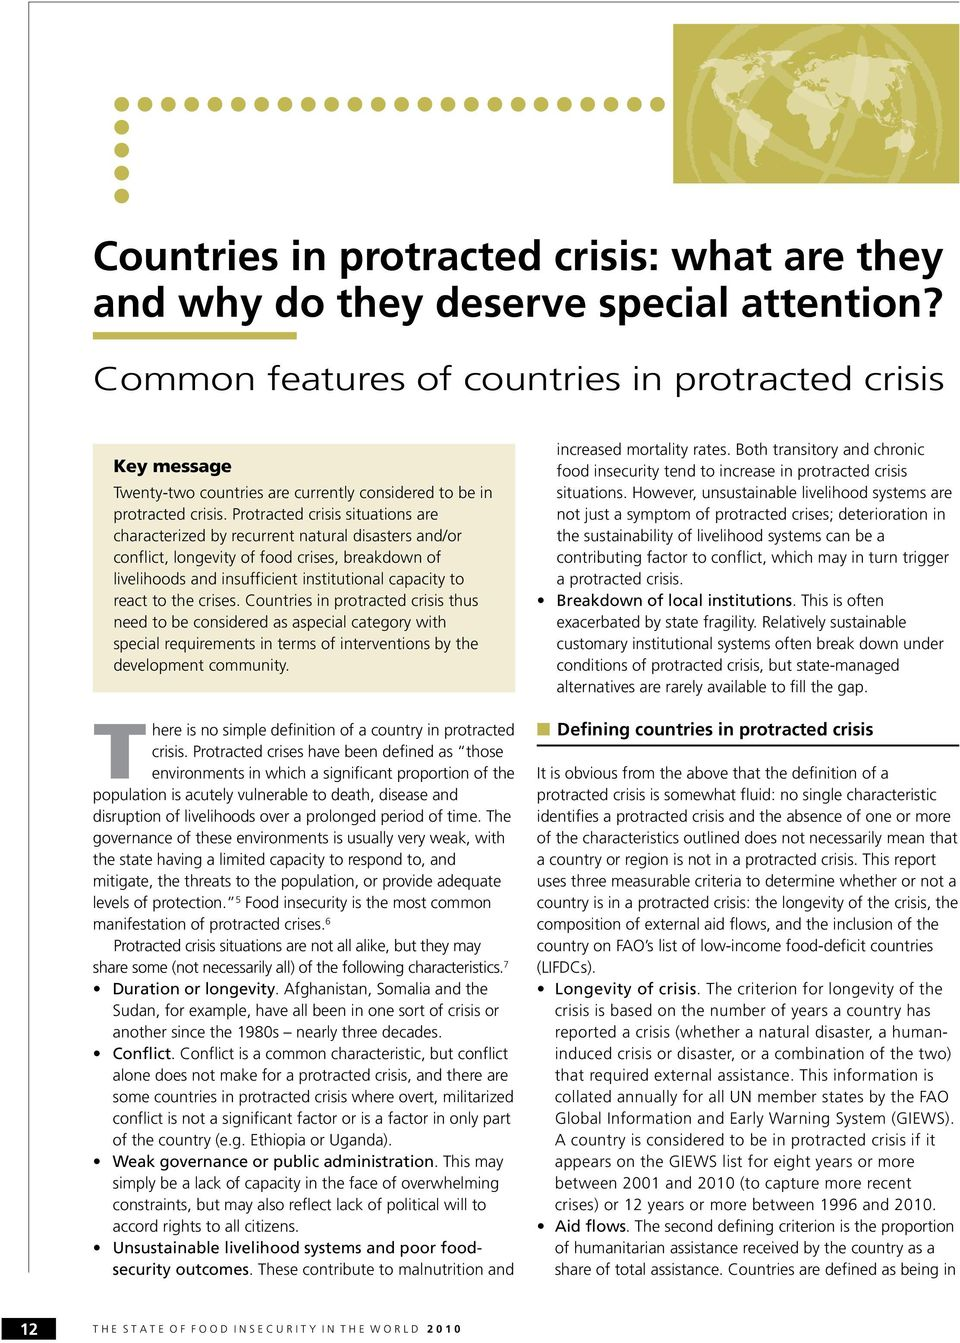 Protracted crisis situations are characterized by recurrent natural disasters and/or conflict, longevity of food crises, breakdown of livelihoods and insufficient institutional capacity to react to